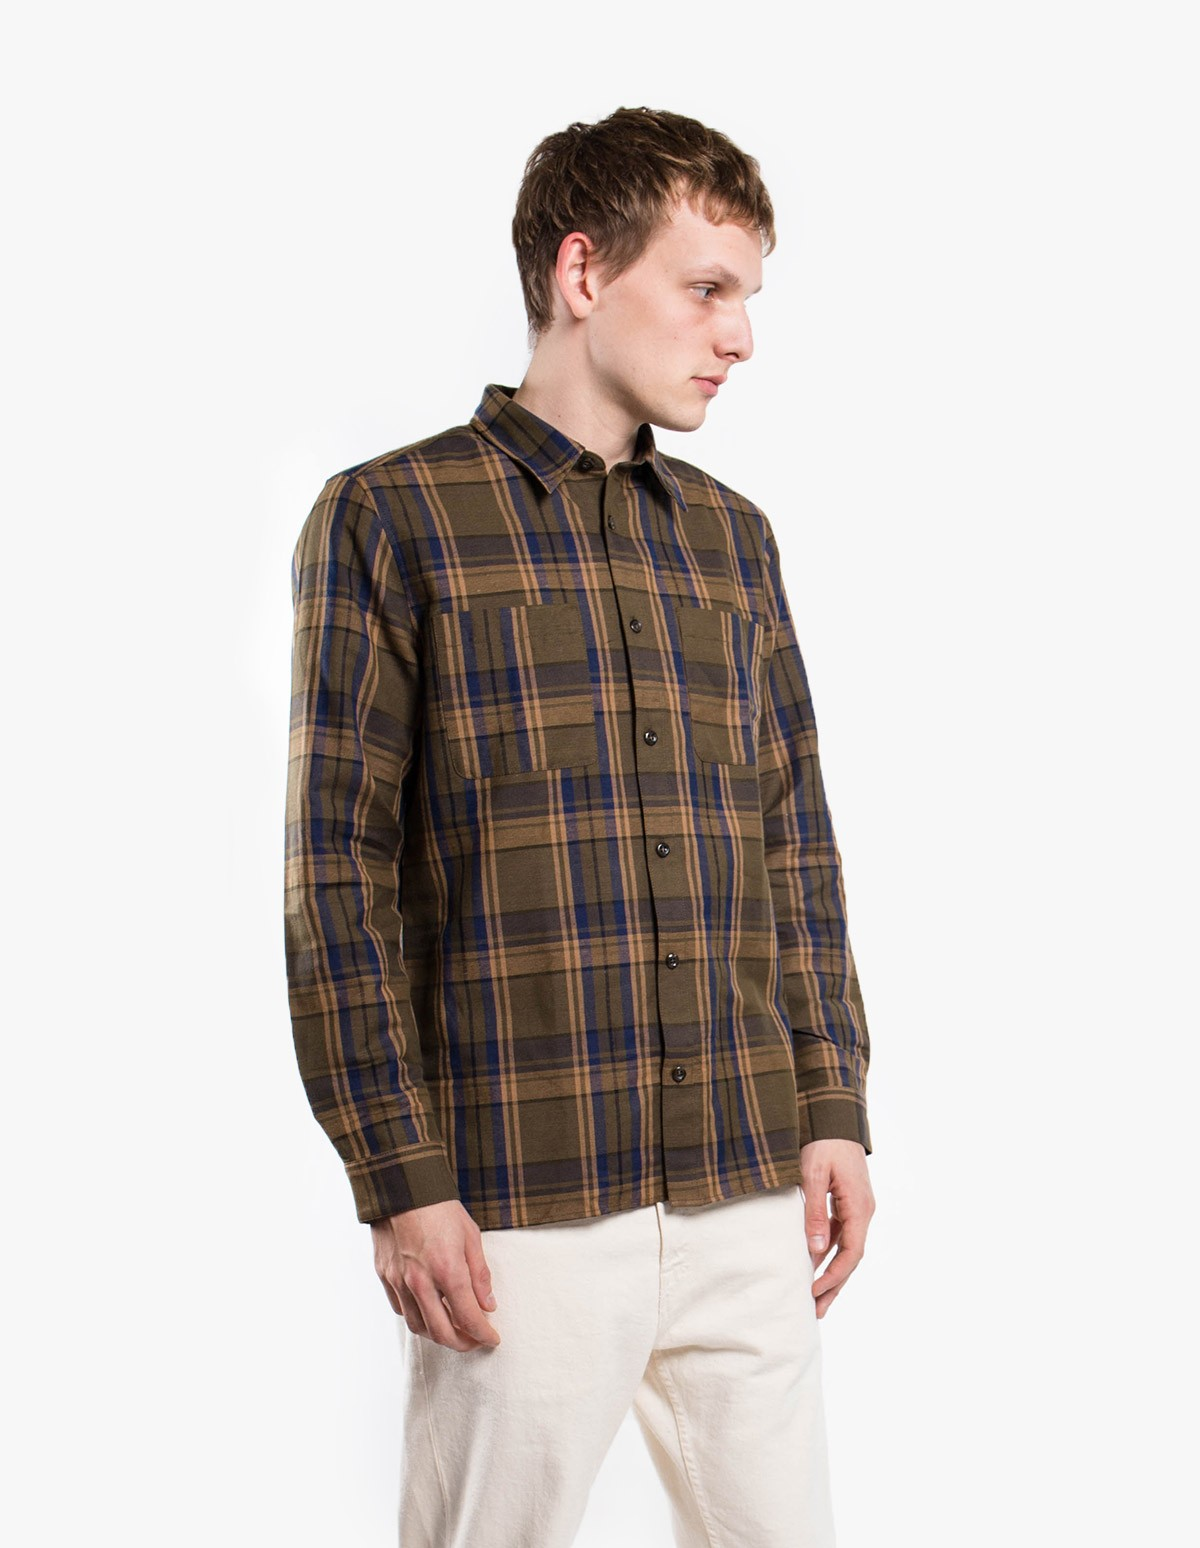 A.P.C. Chemise Achille in Camel